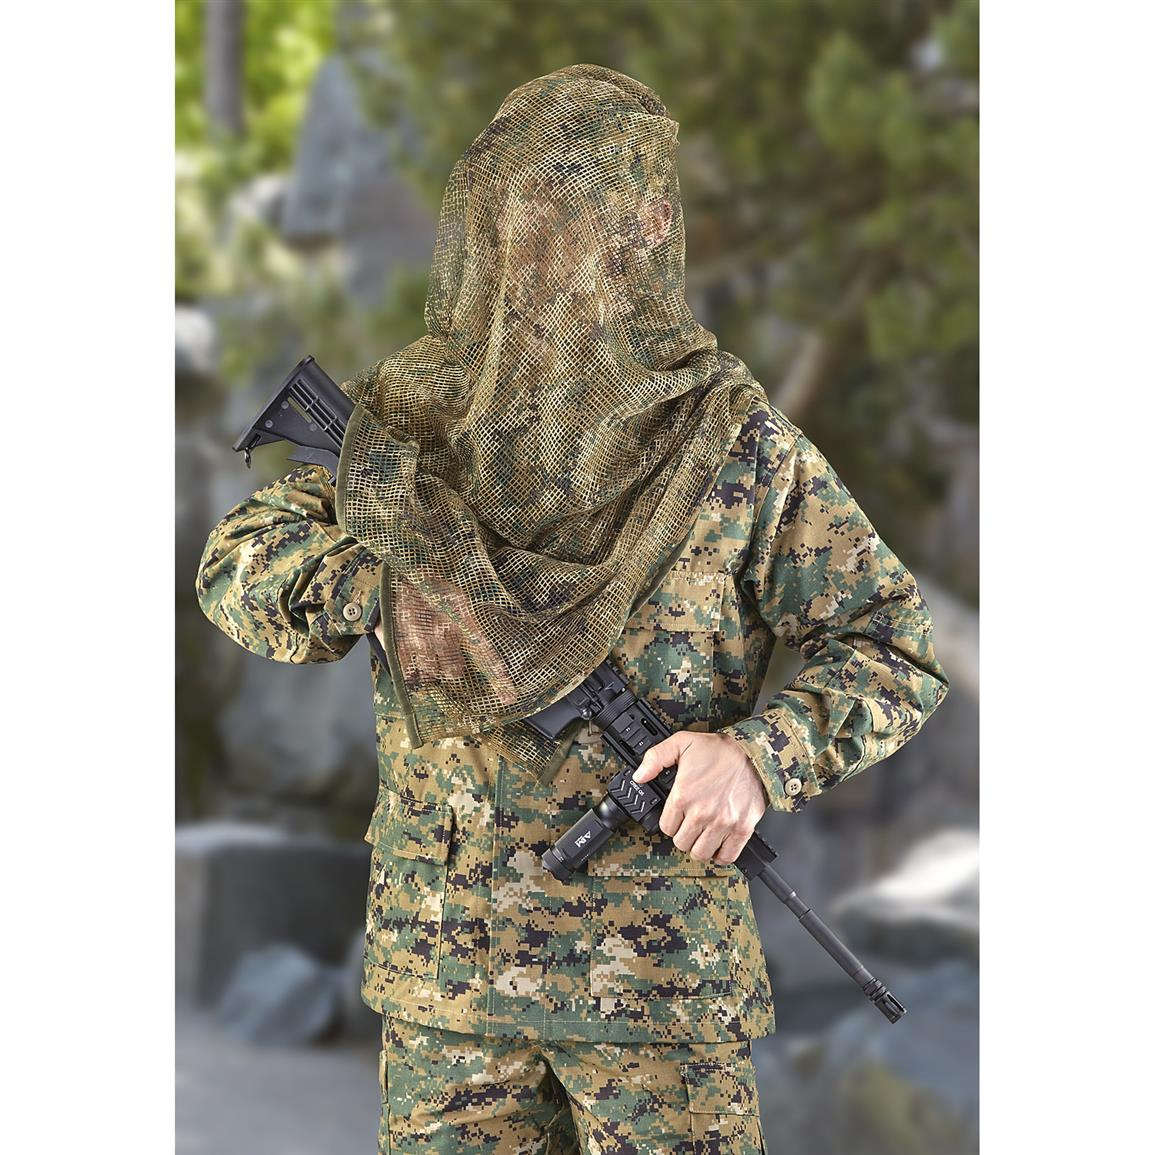 Military-style Veil breaks up your silhouette, so you remain concealed from view